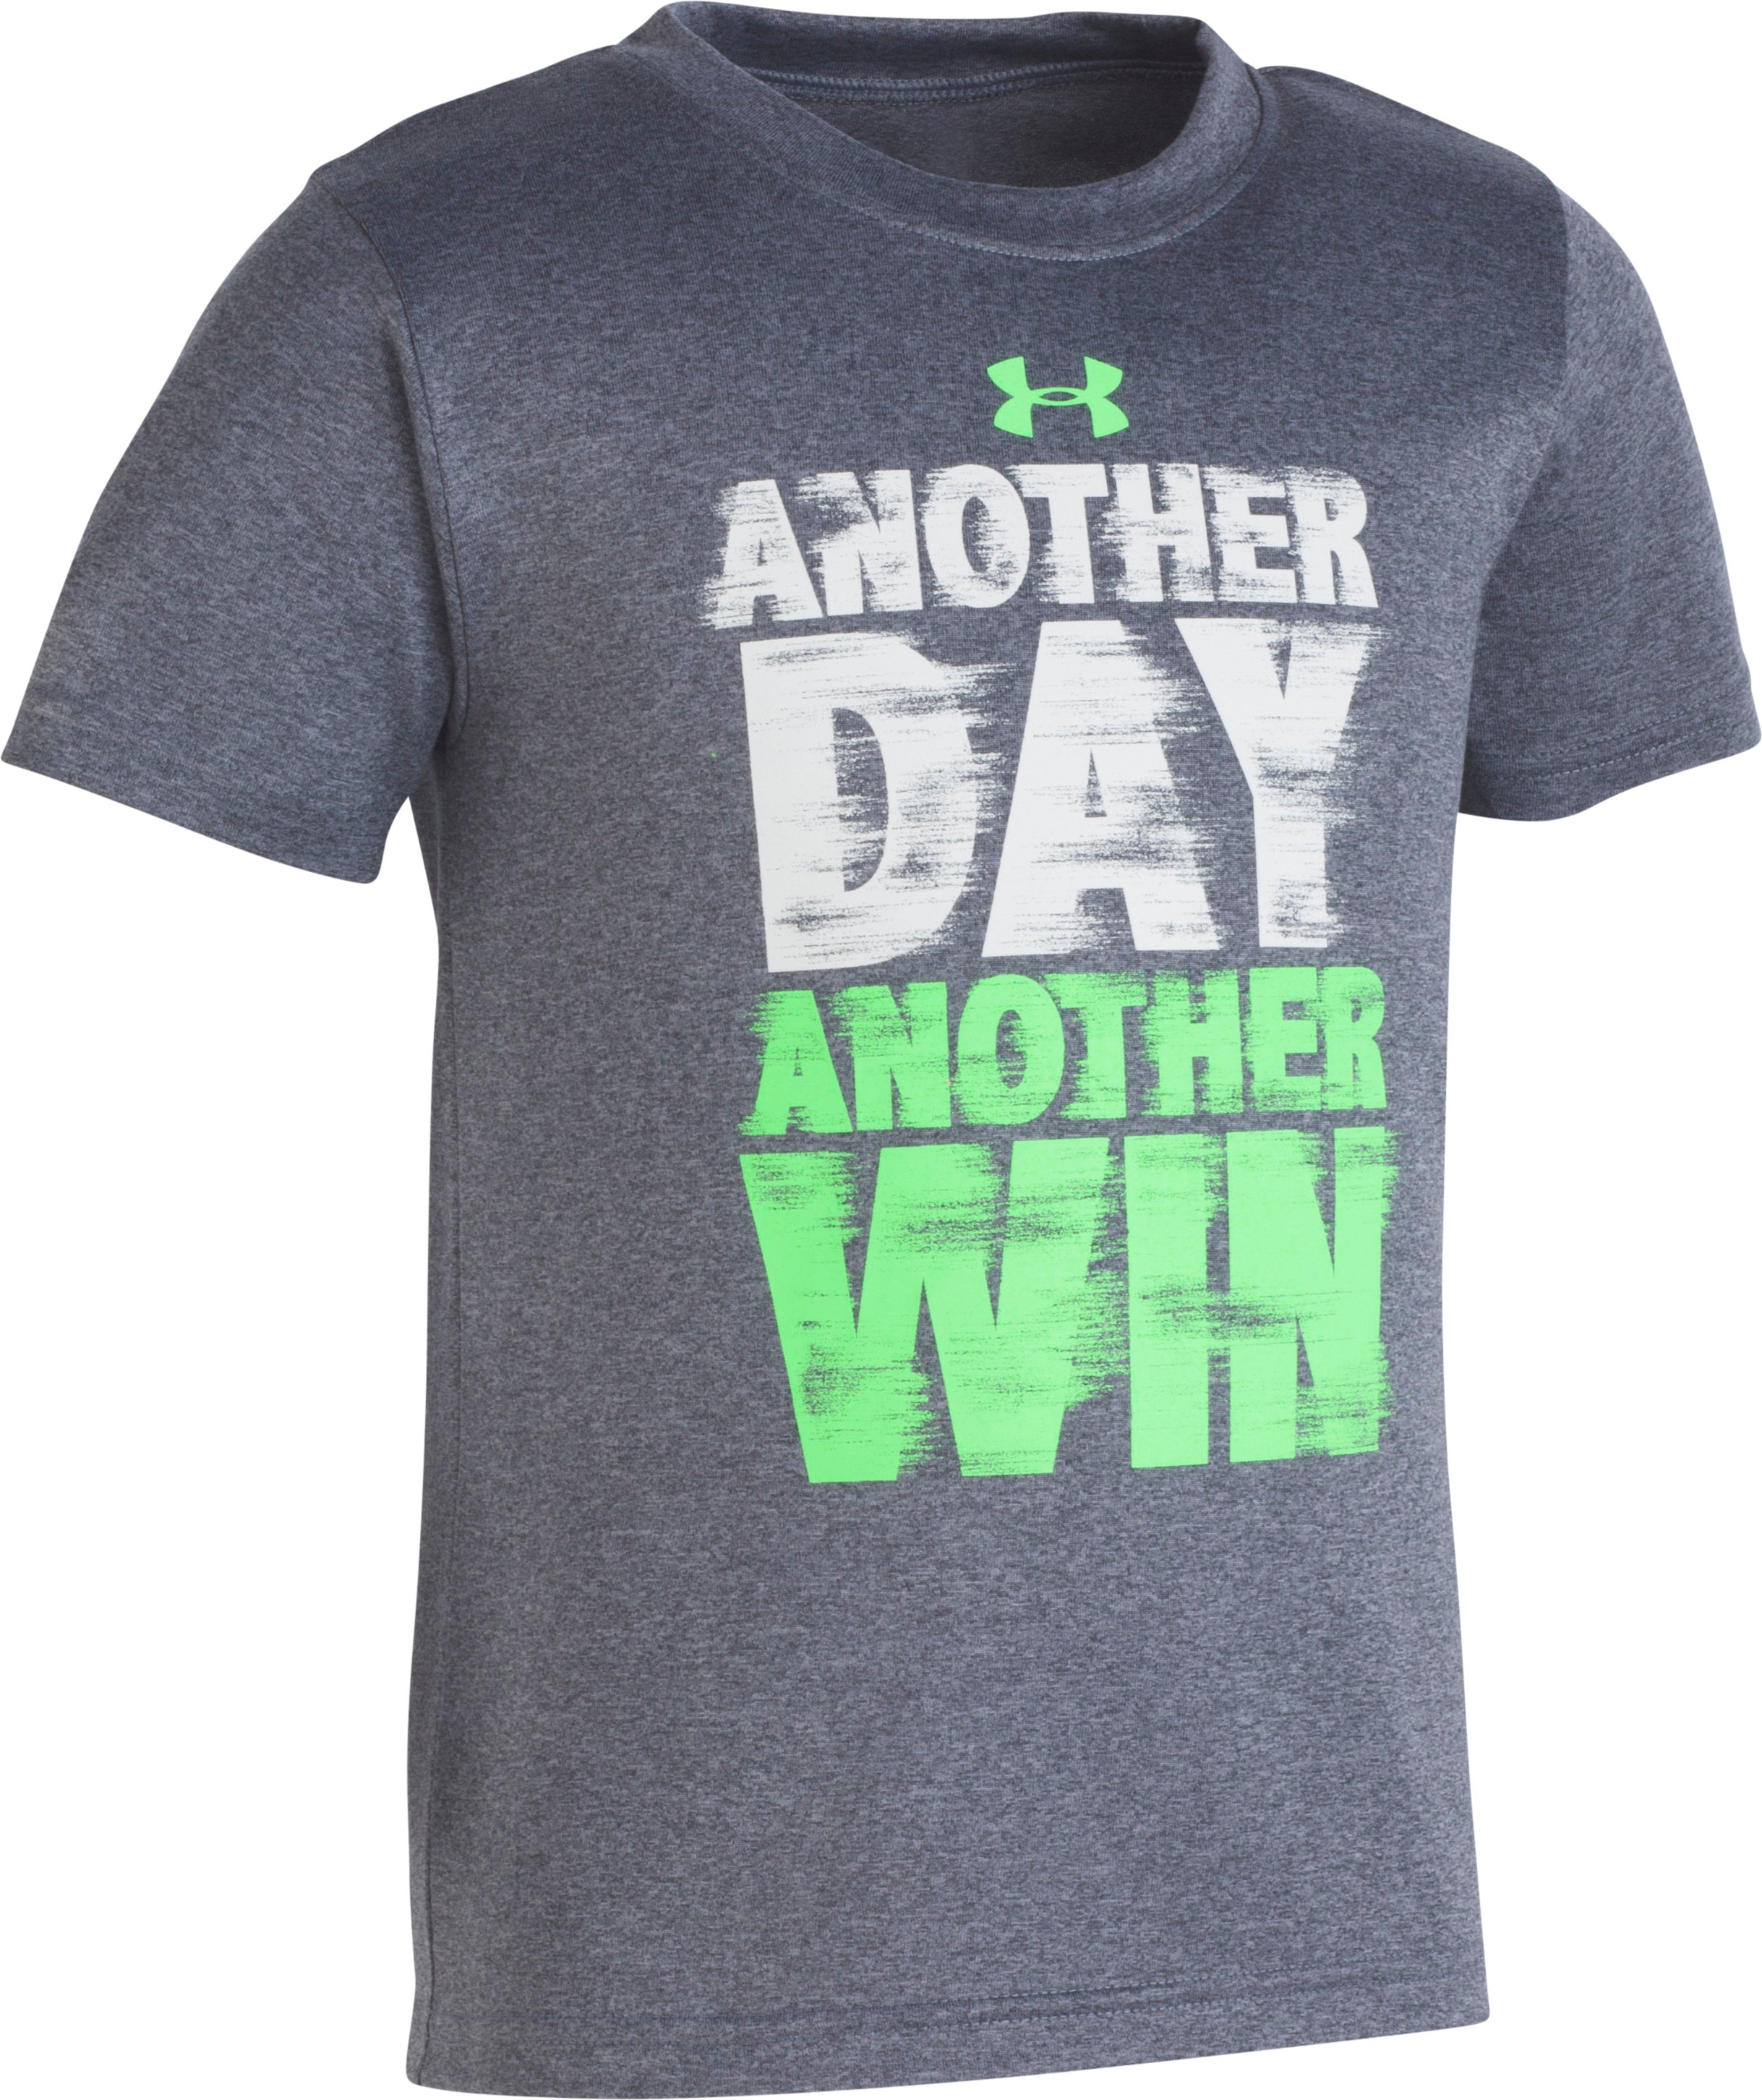 Boys' Toddler UA Another Day Another Win T-Shirt , Charcoal Medium Heather, zoomed